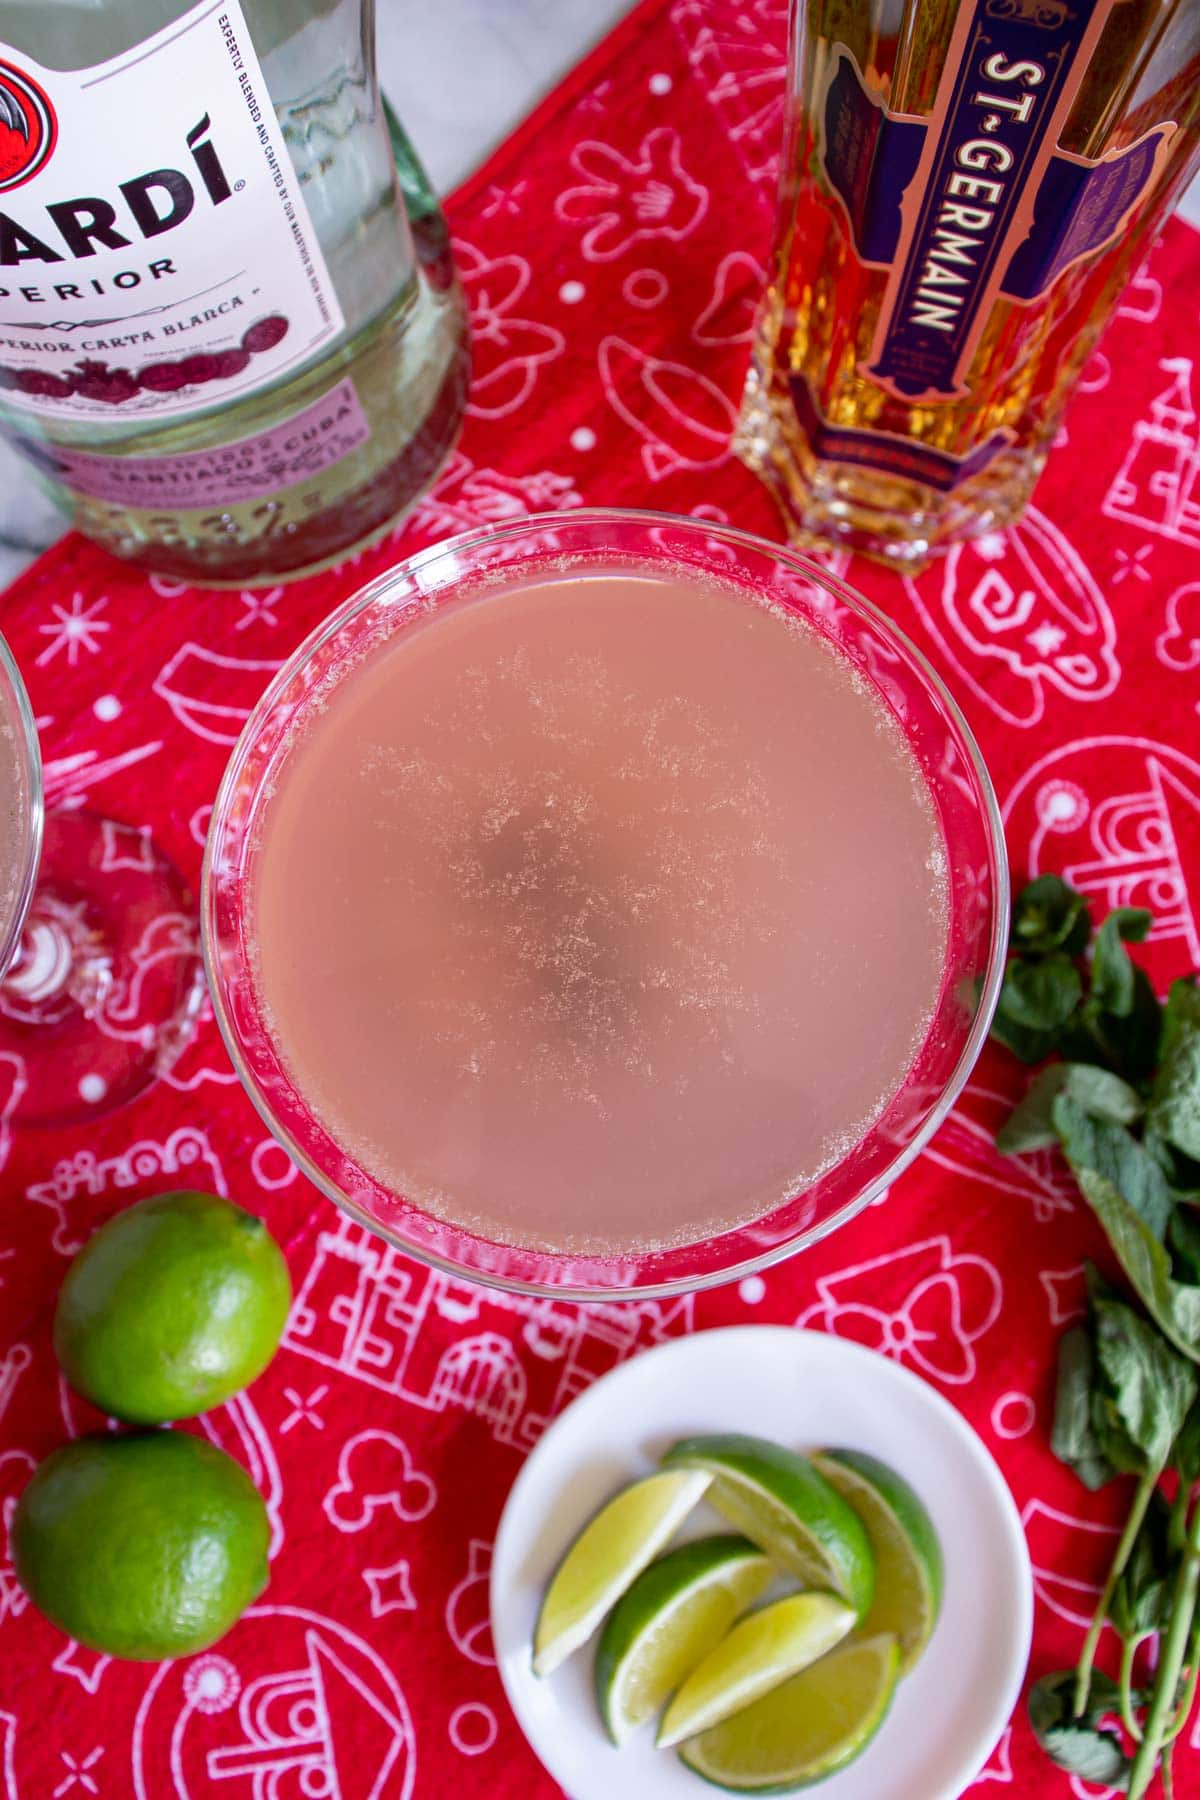 A blush colored drink in a cocktail glass surrounded by limes, mint and alcohol bottles.